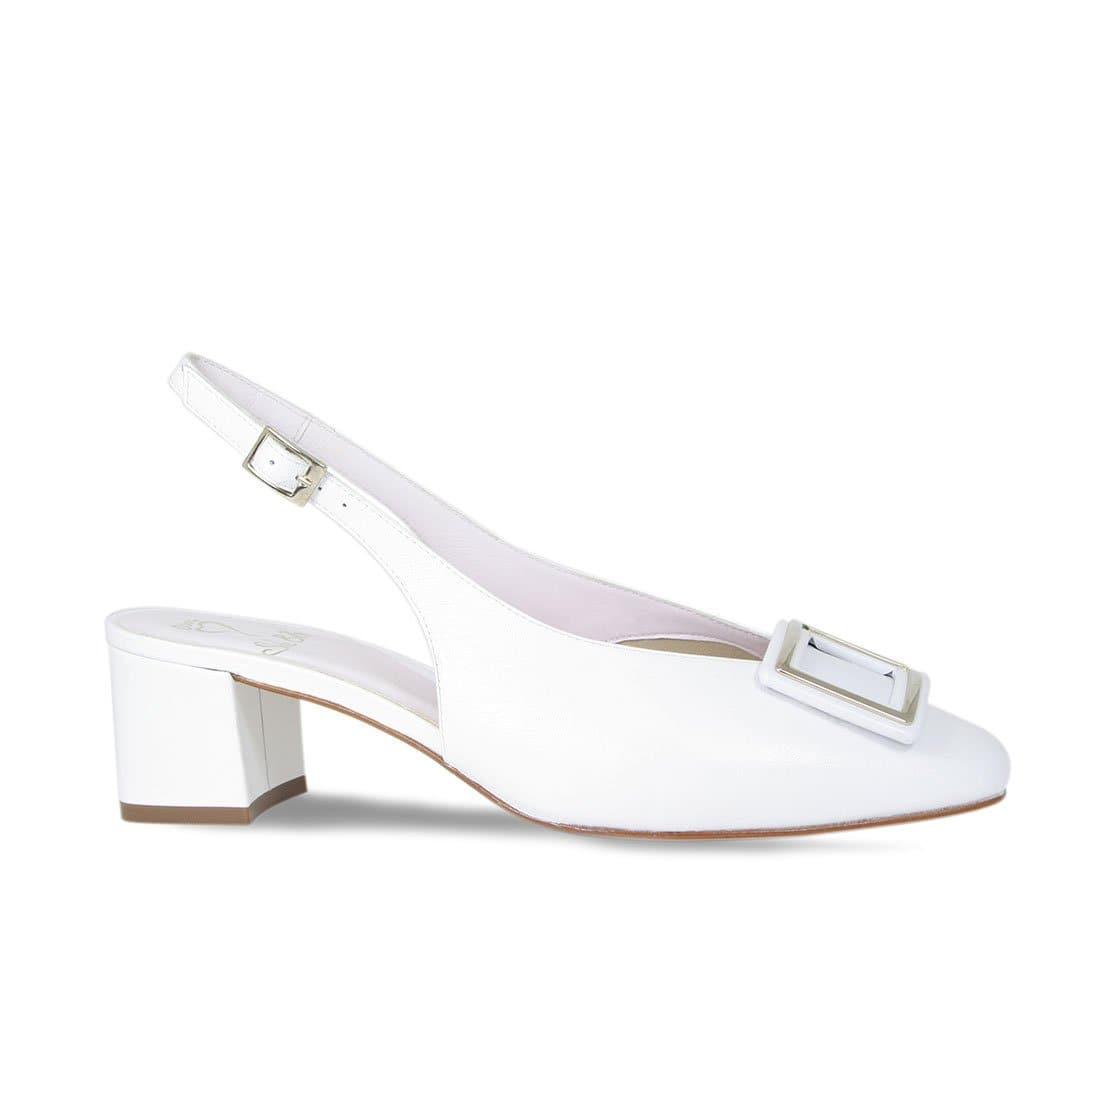 White Leather Square Toe Sling-Back Heels